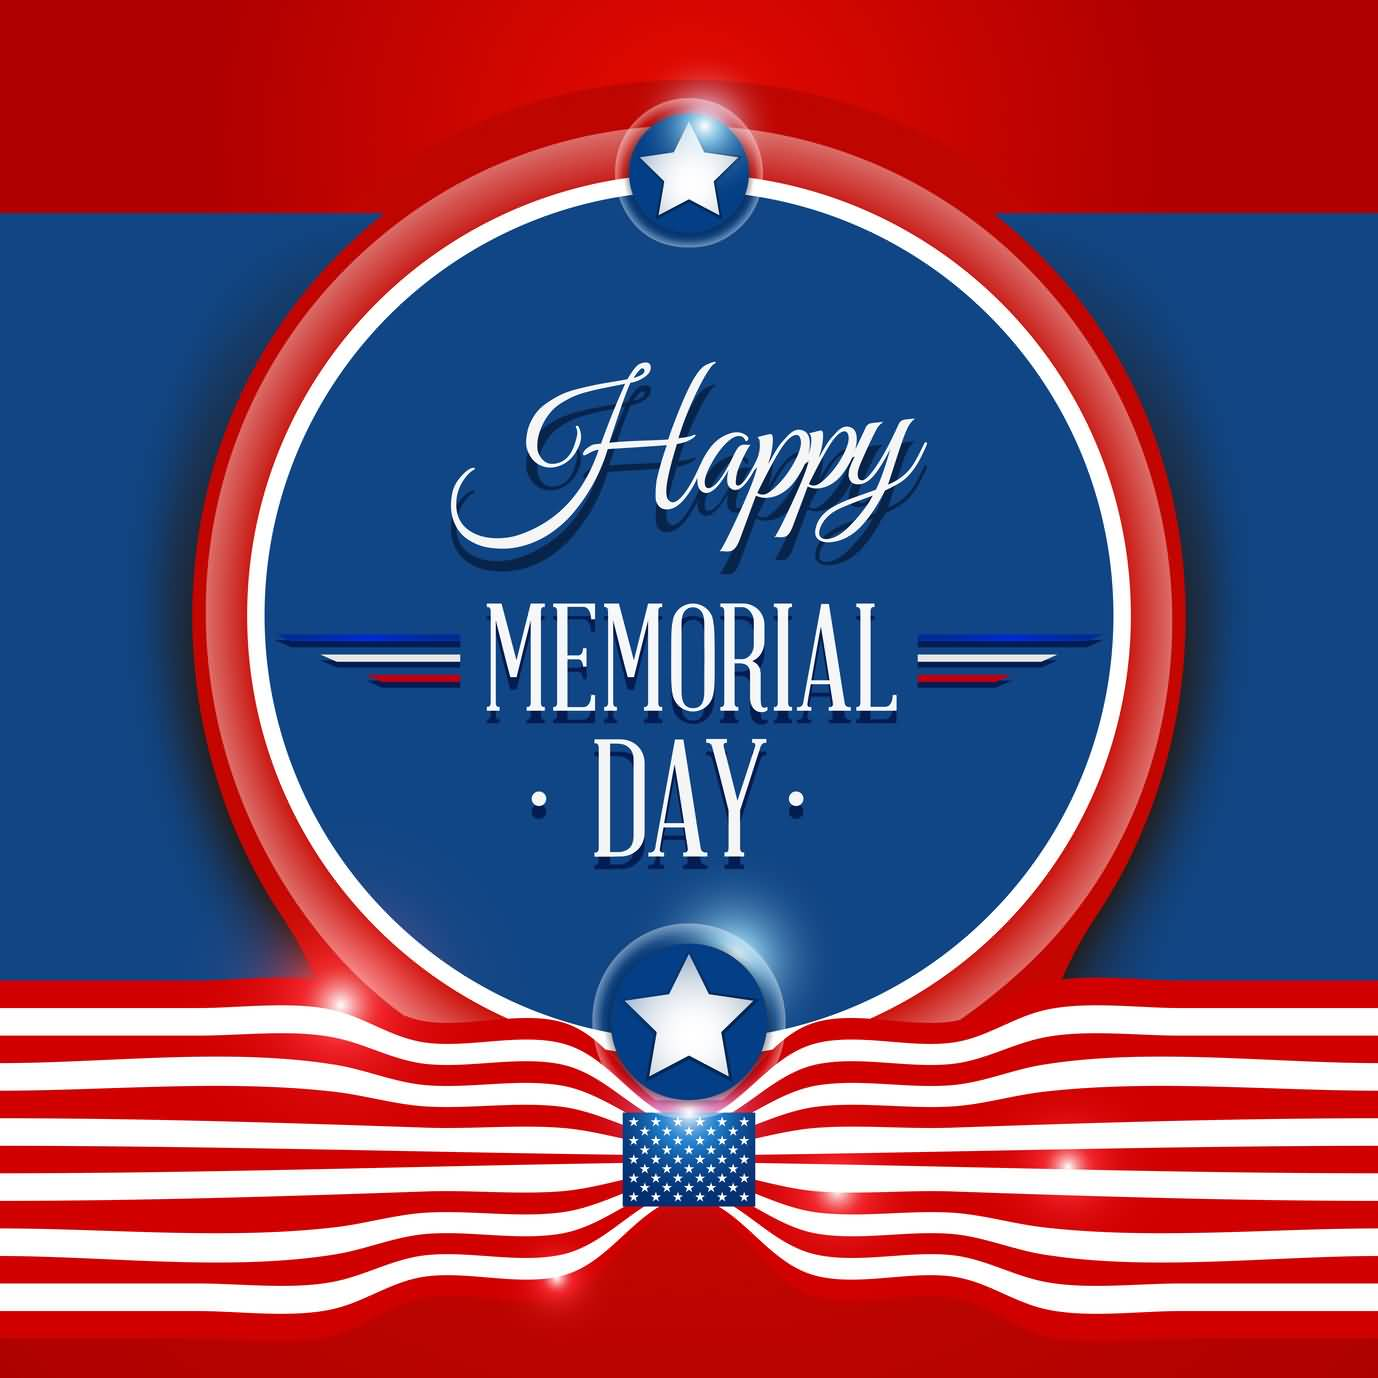 Happy Memorial Day Images Free Download